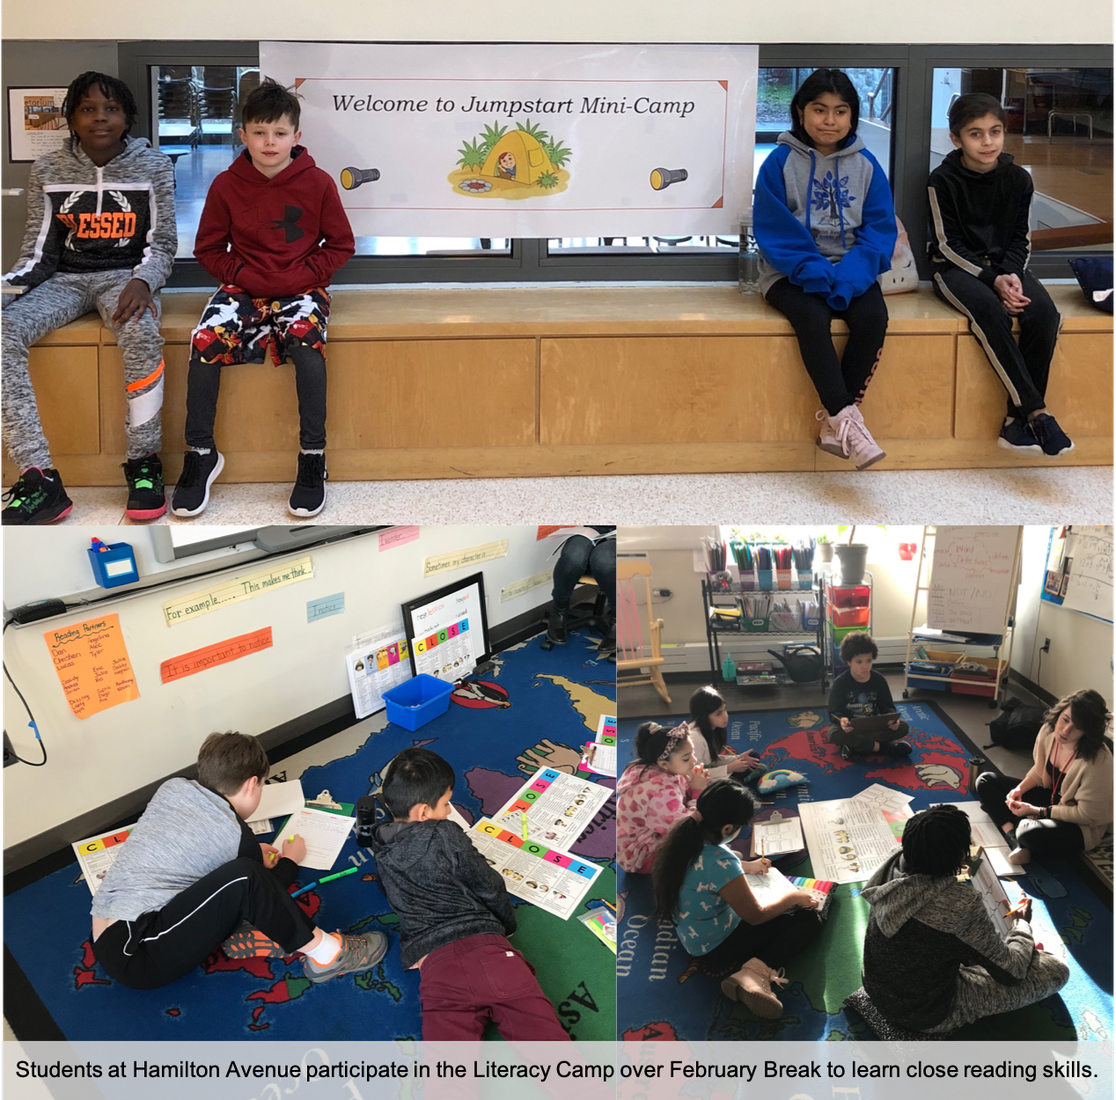 Students at Hamilton Avenue School participate in a Literacy Camp over February Break to learn skills for close reading.